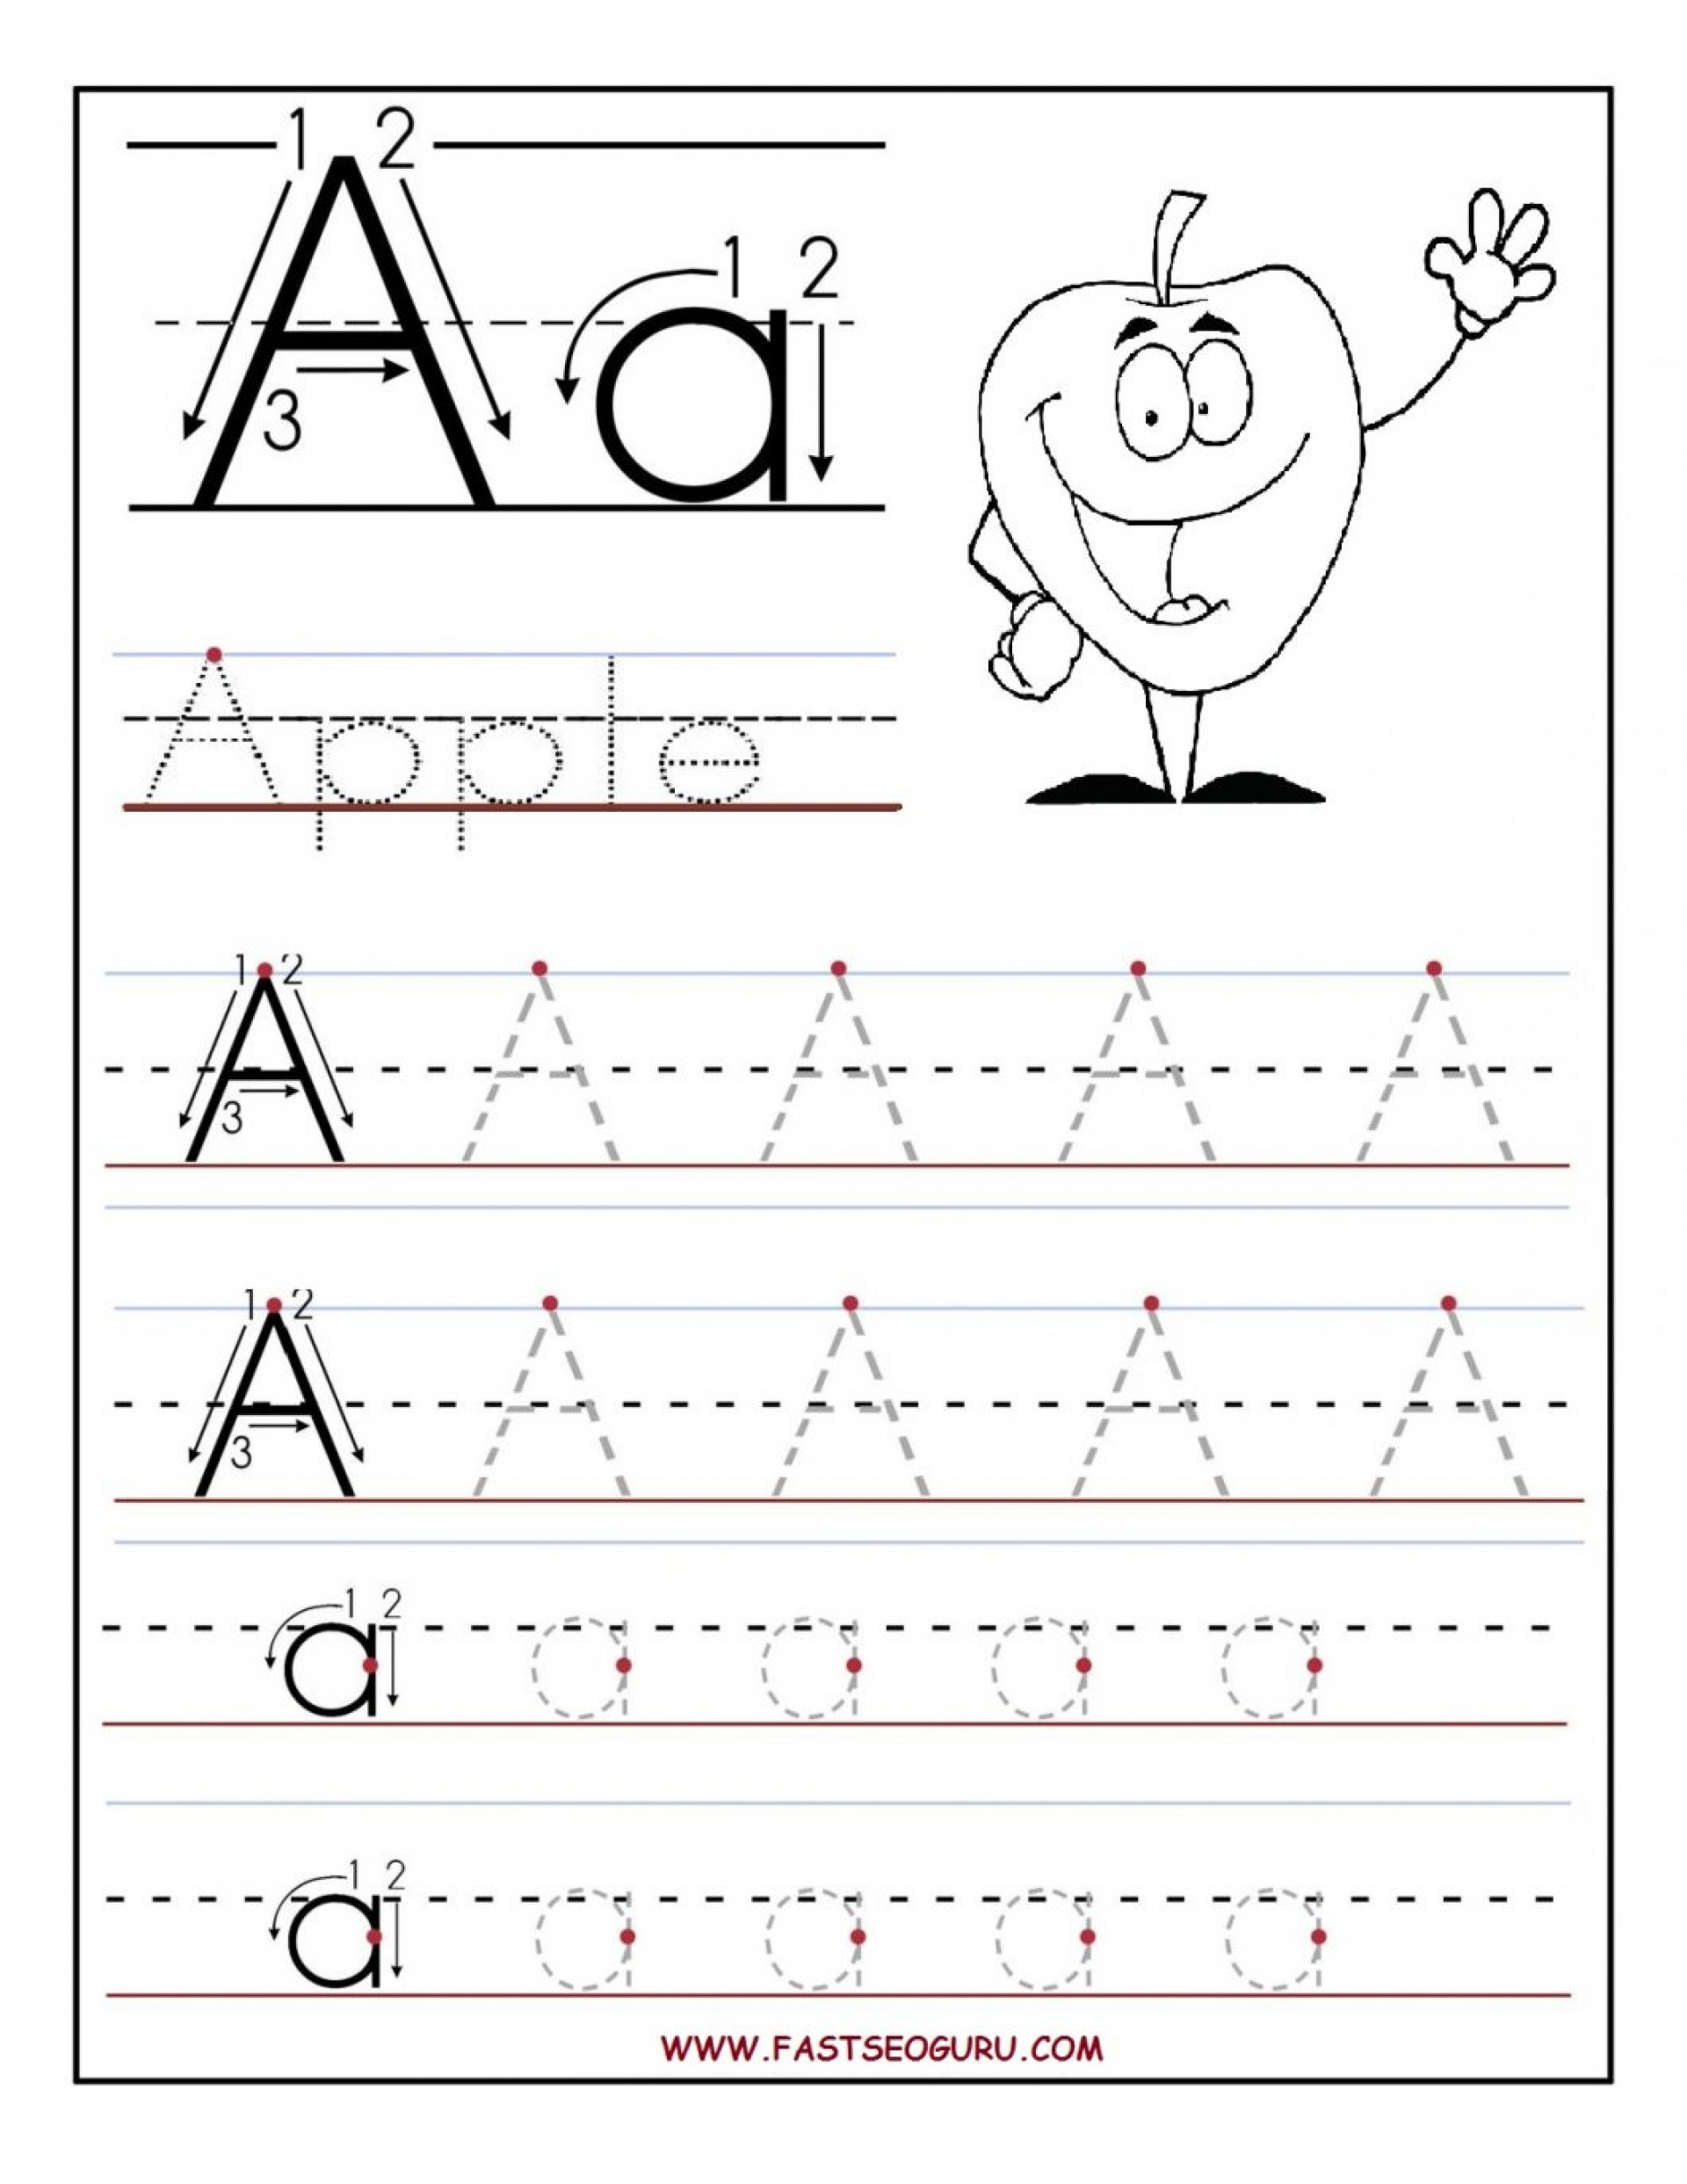 Coloring Book : Free Printable Tracingts For Kindergarten pertaining to Printable Tracing Letters Free